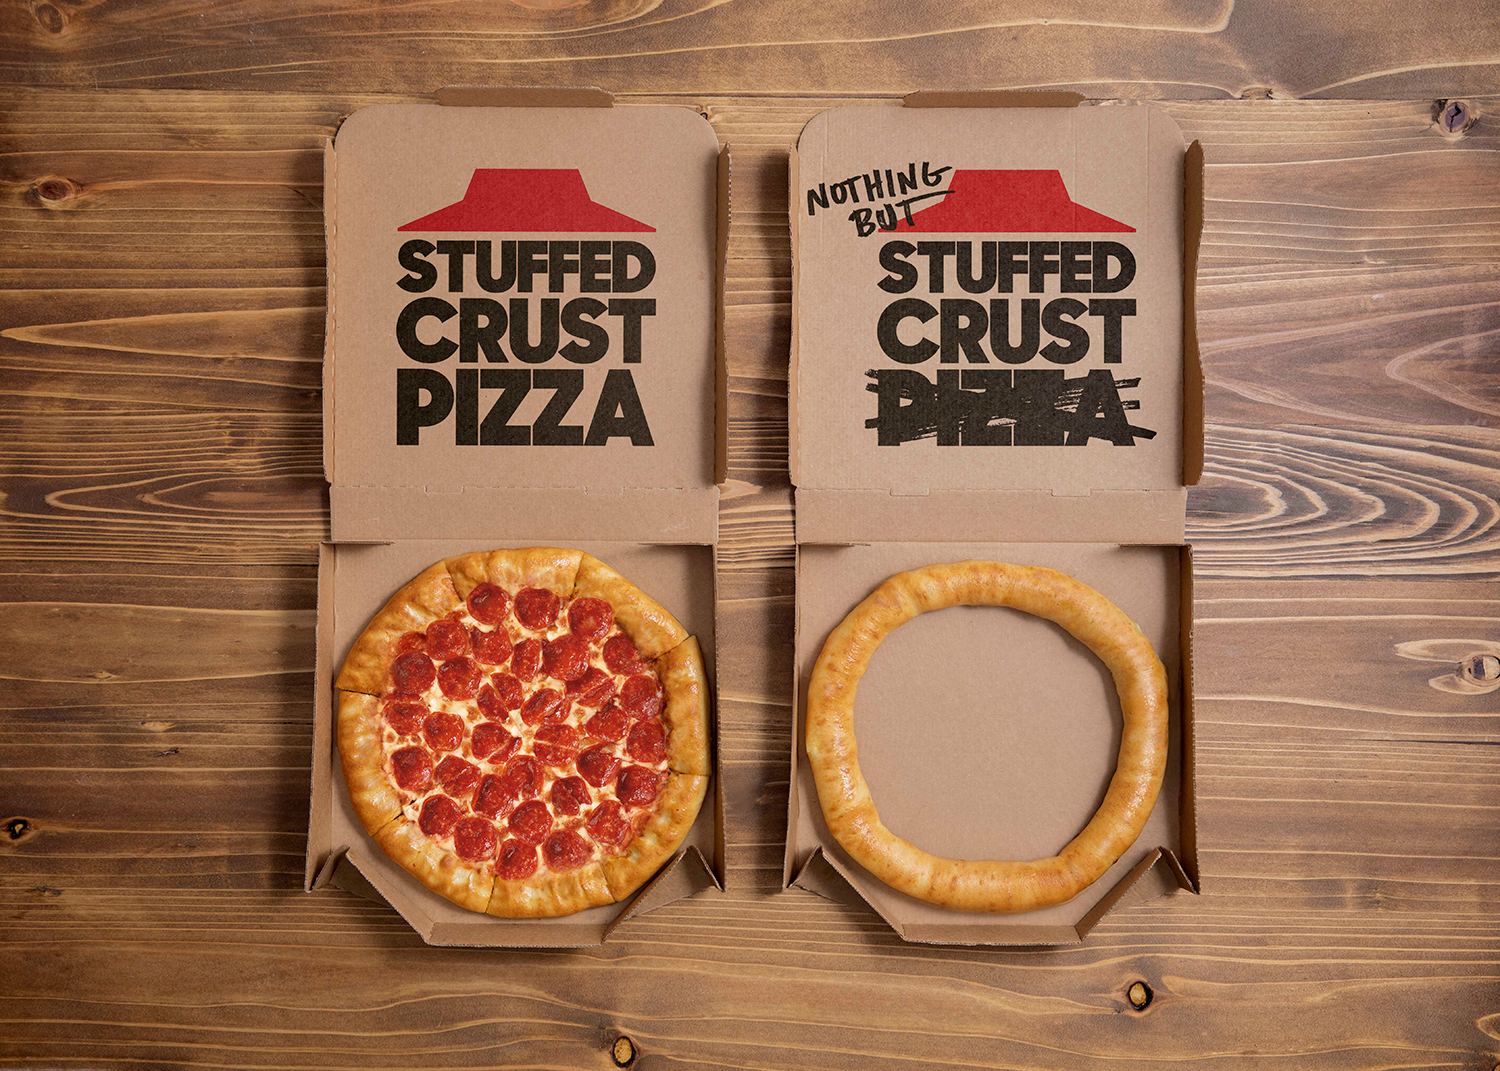 Nothing but stuffed crust